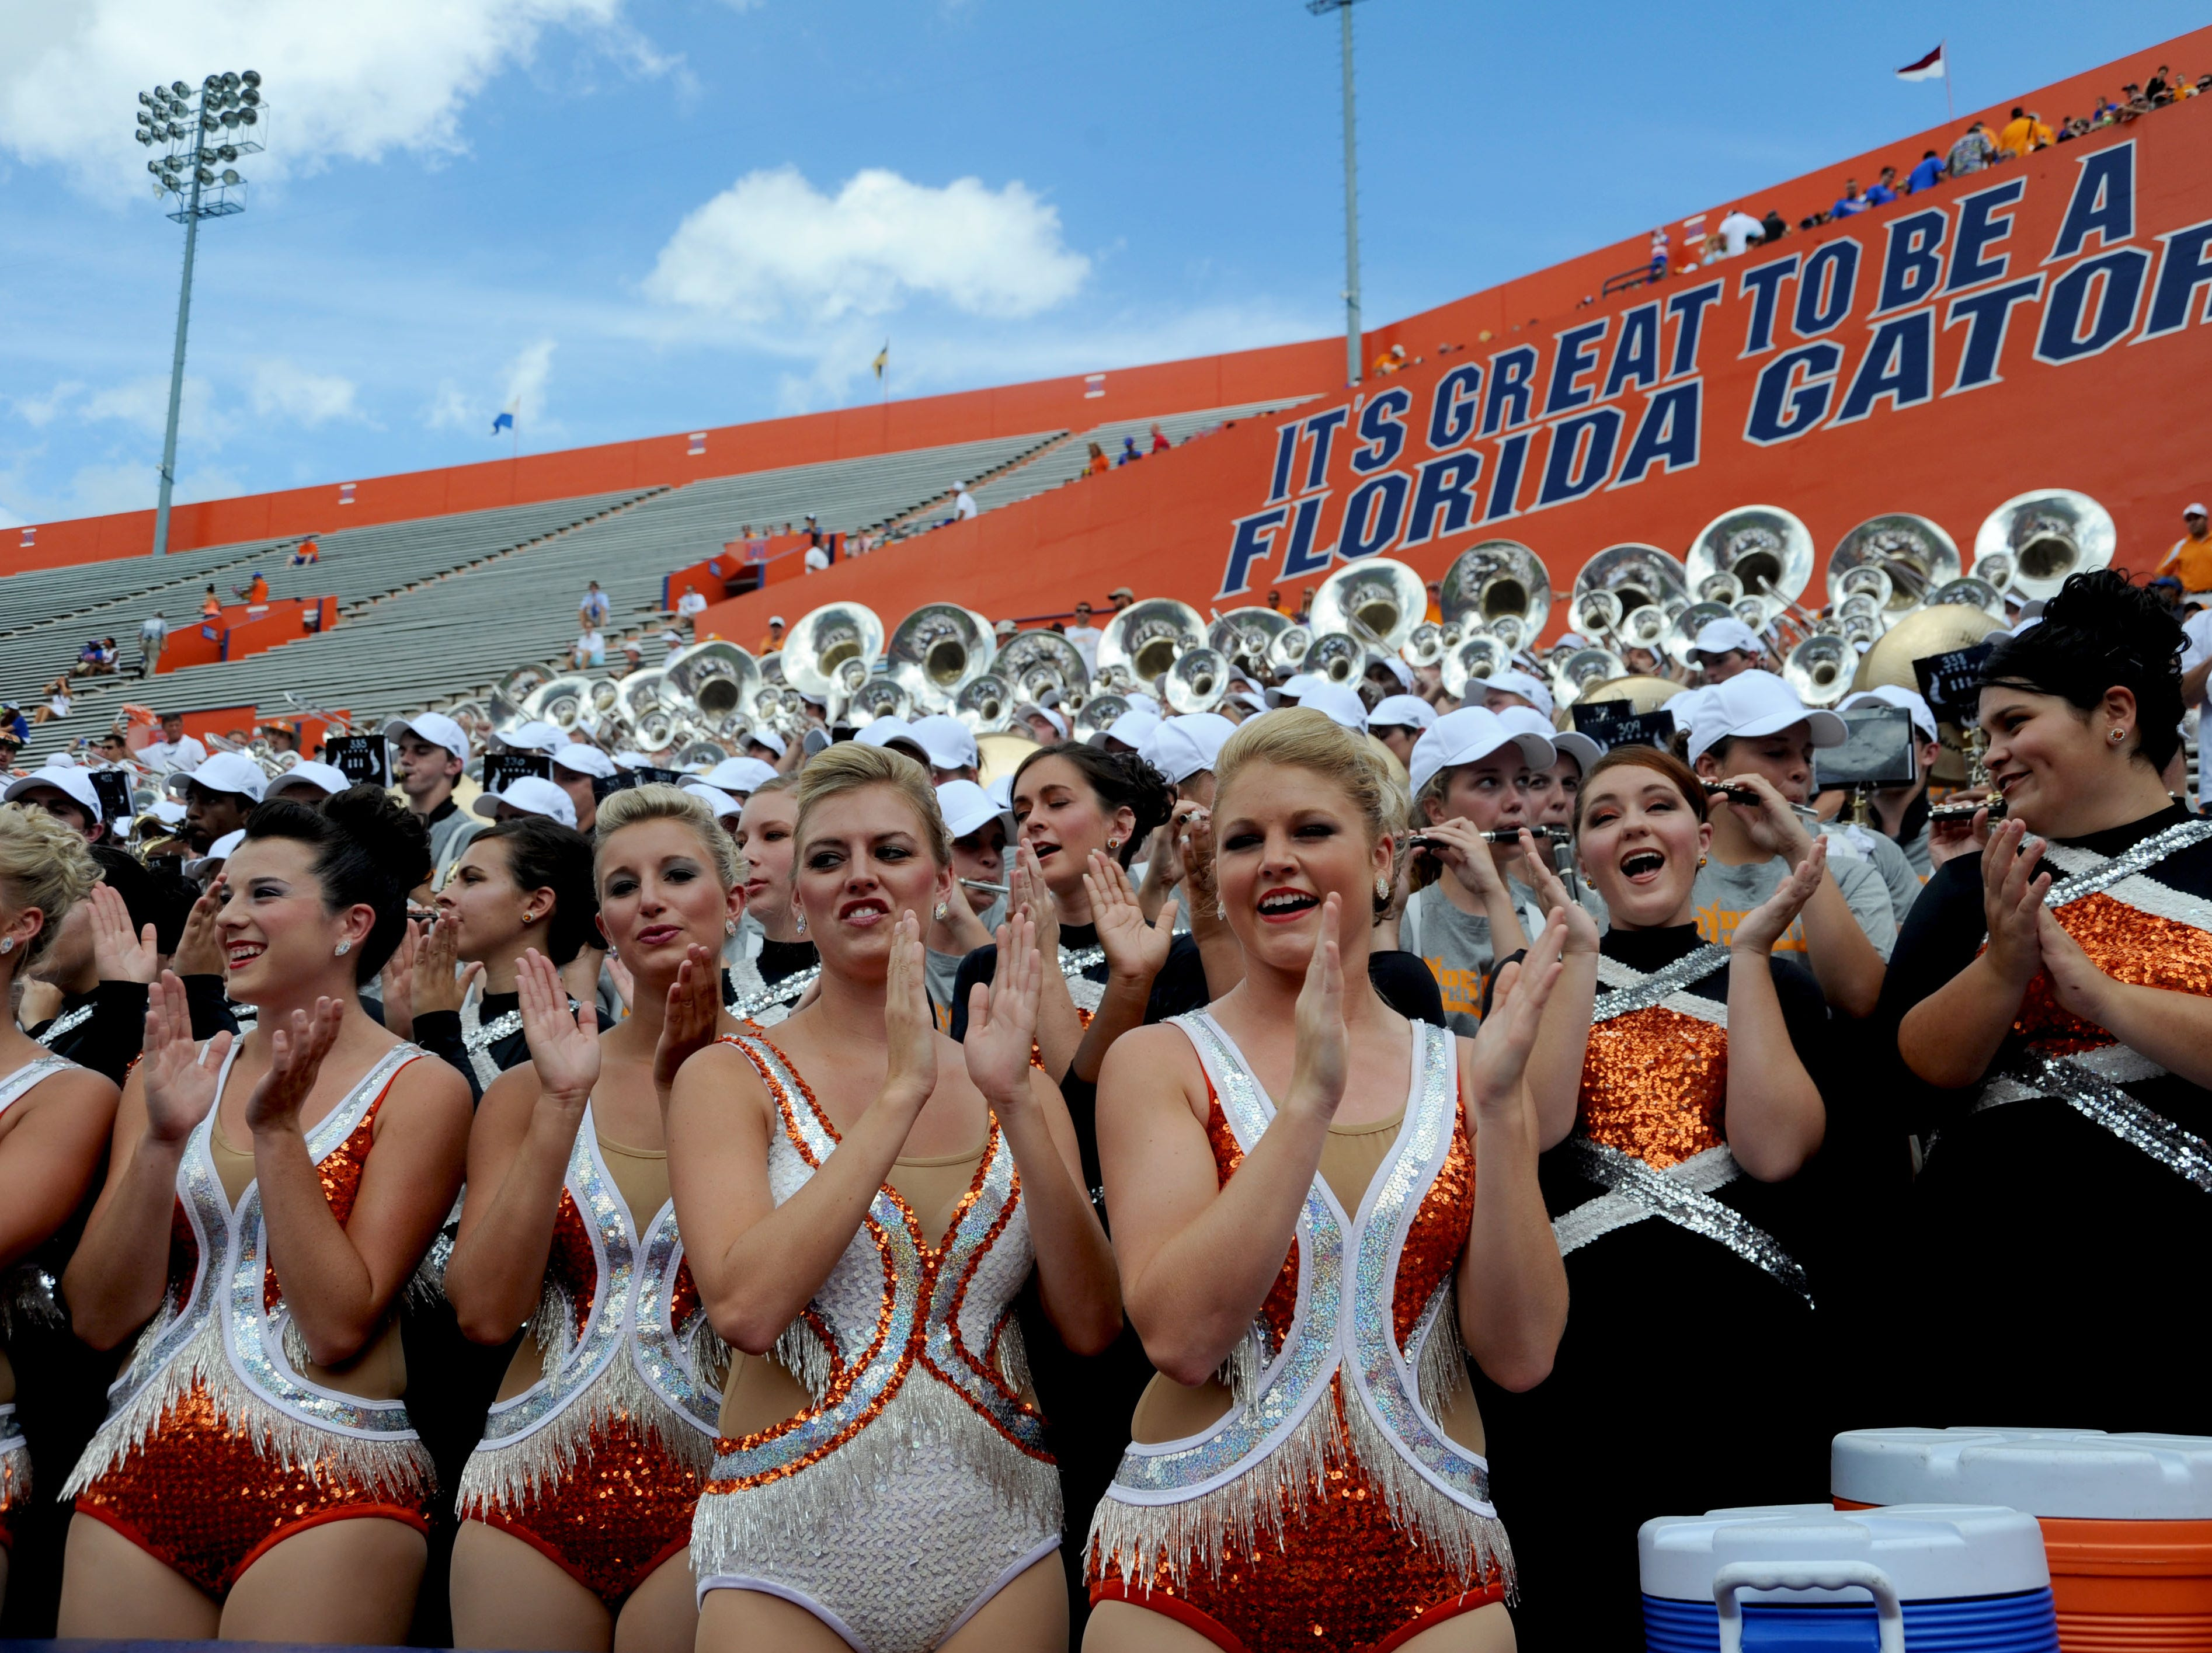 The Pride of the Southland pep band playing in the Swamy before the Tennessee vs Florida game Saturday, Sep. 21, 2013 at Ben Hill Griffin Stadium in Gainesville, FL.